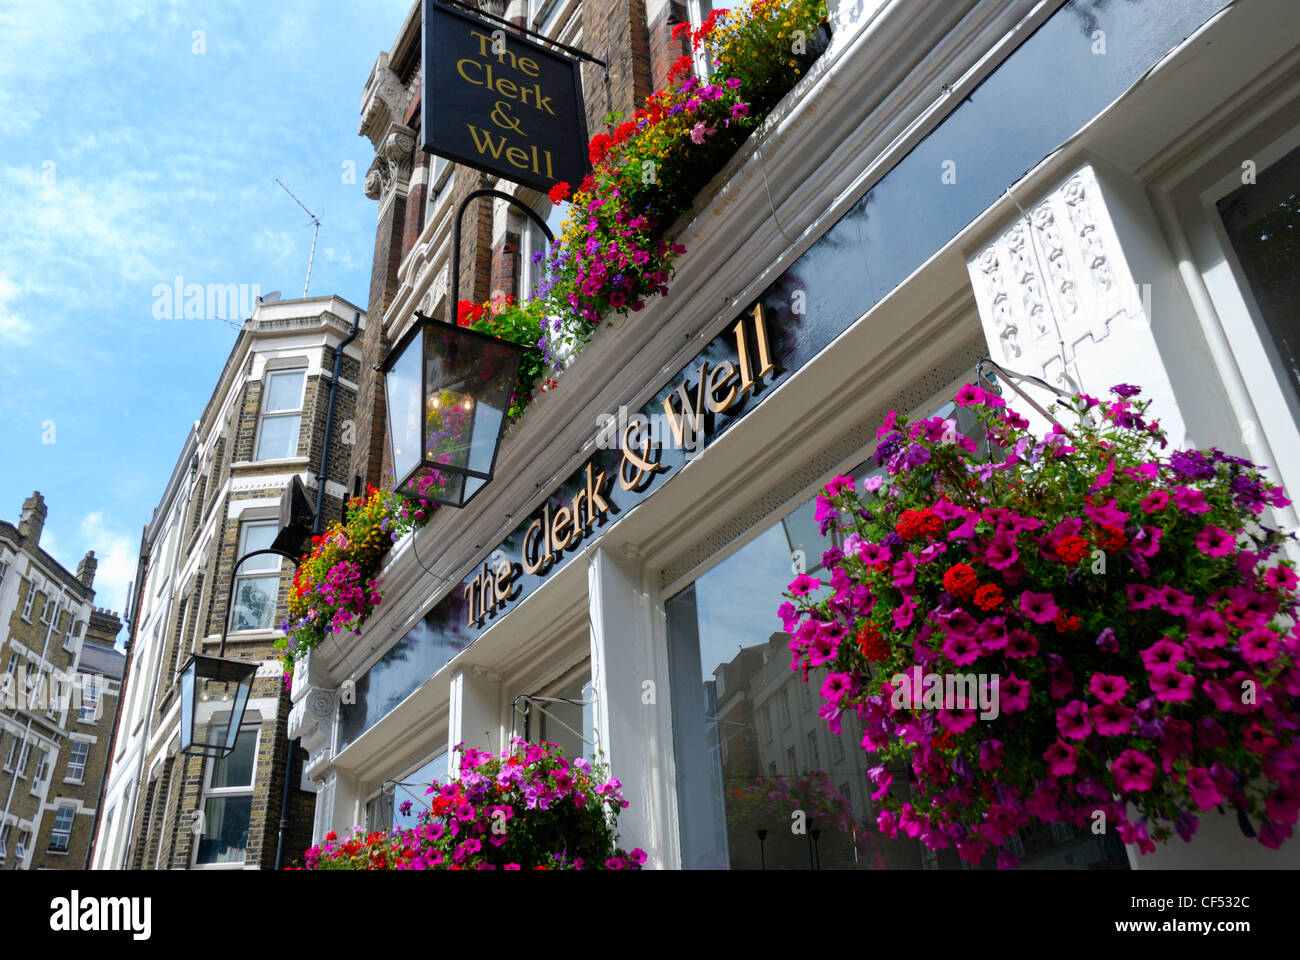 The Clerk & Well public house in Clerkenwell Road. - Stock Image